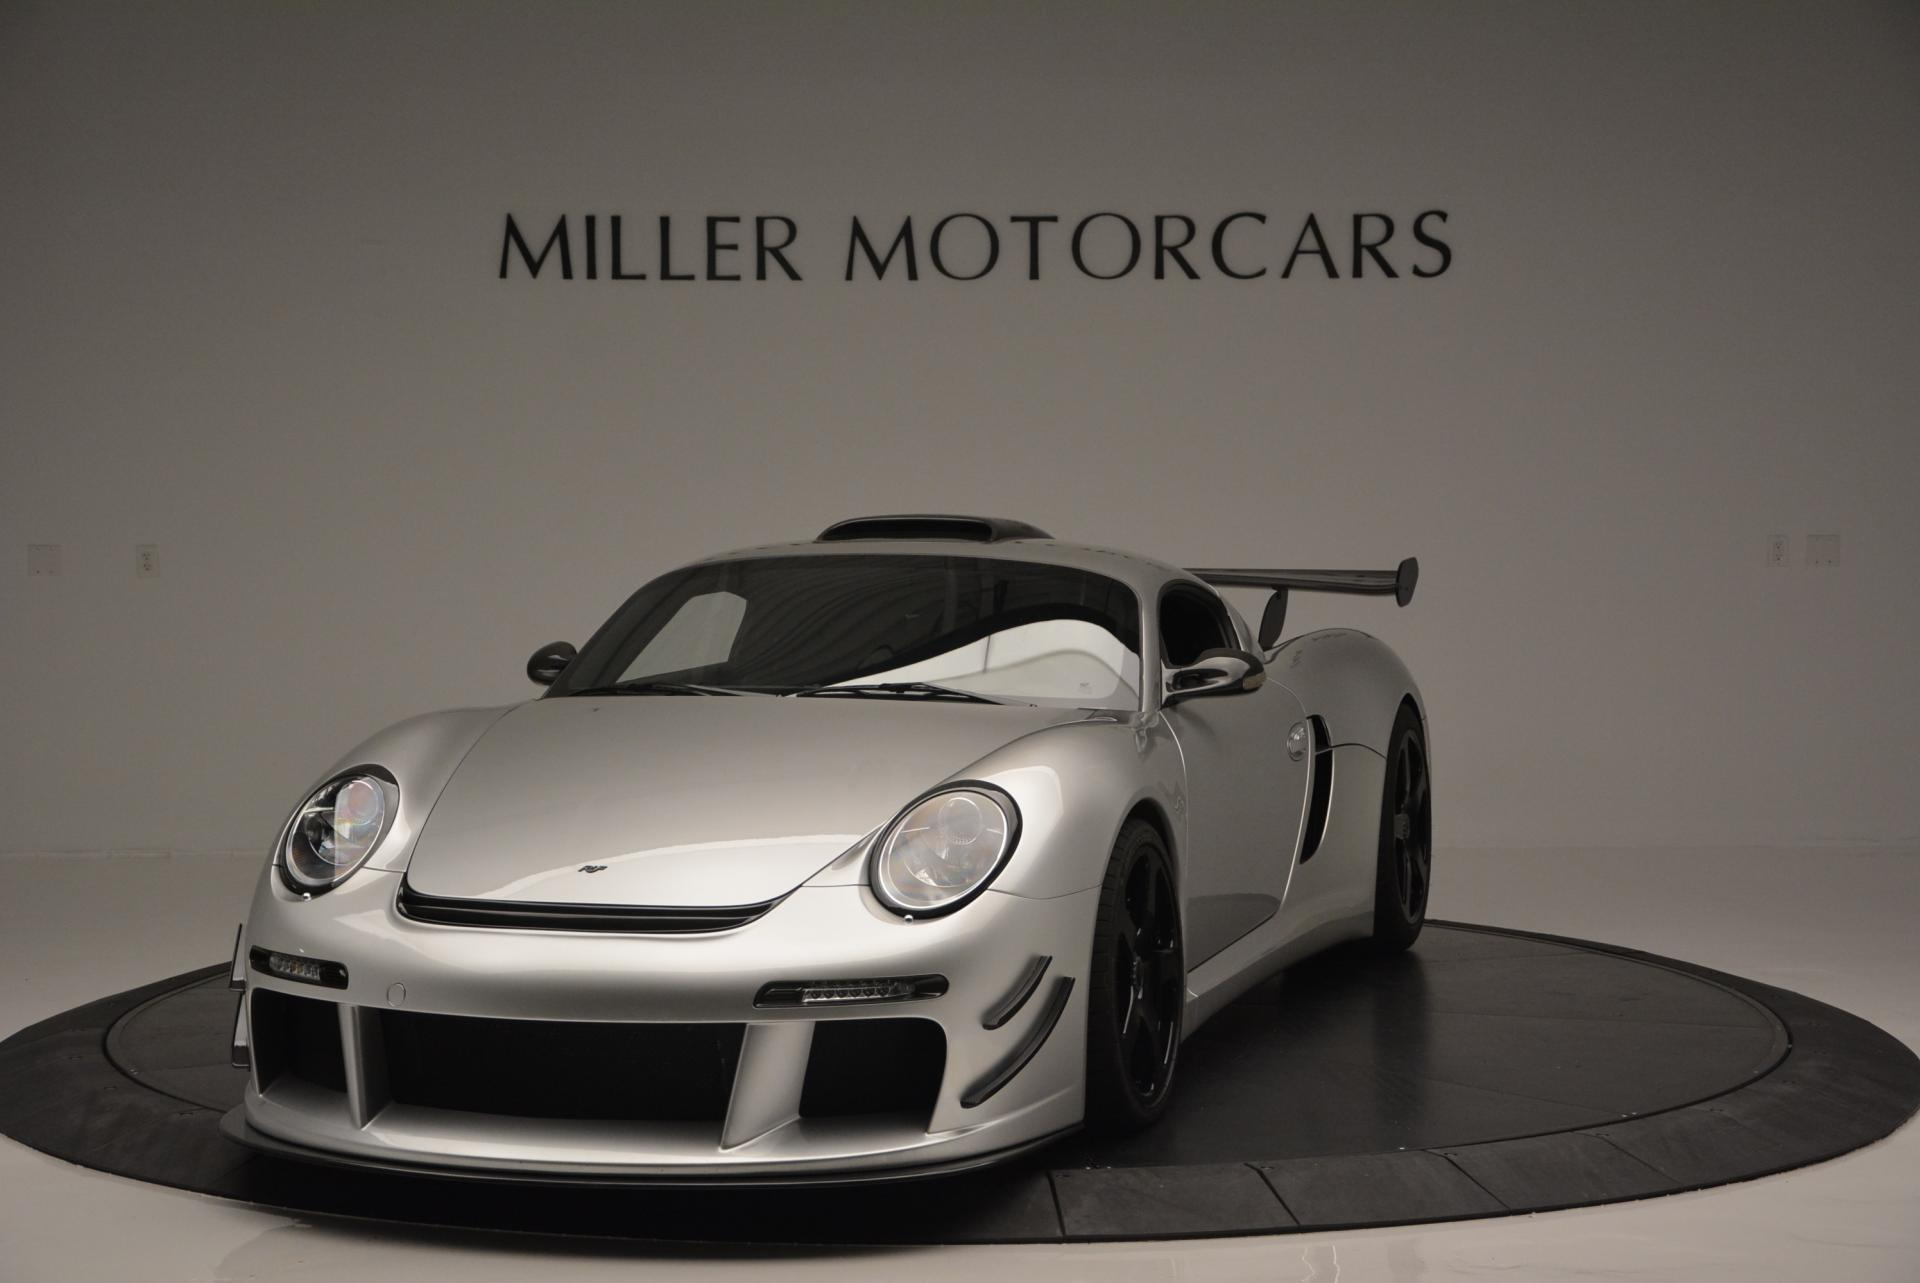 Used 2012 Porsche RUF CTR-3 Clubsport for sale Sold at Alfa Romeo of Westport in Westport CT 06880 1